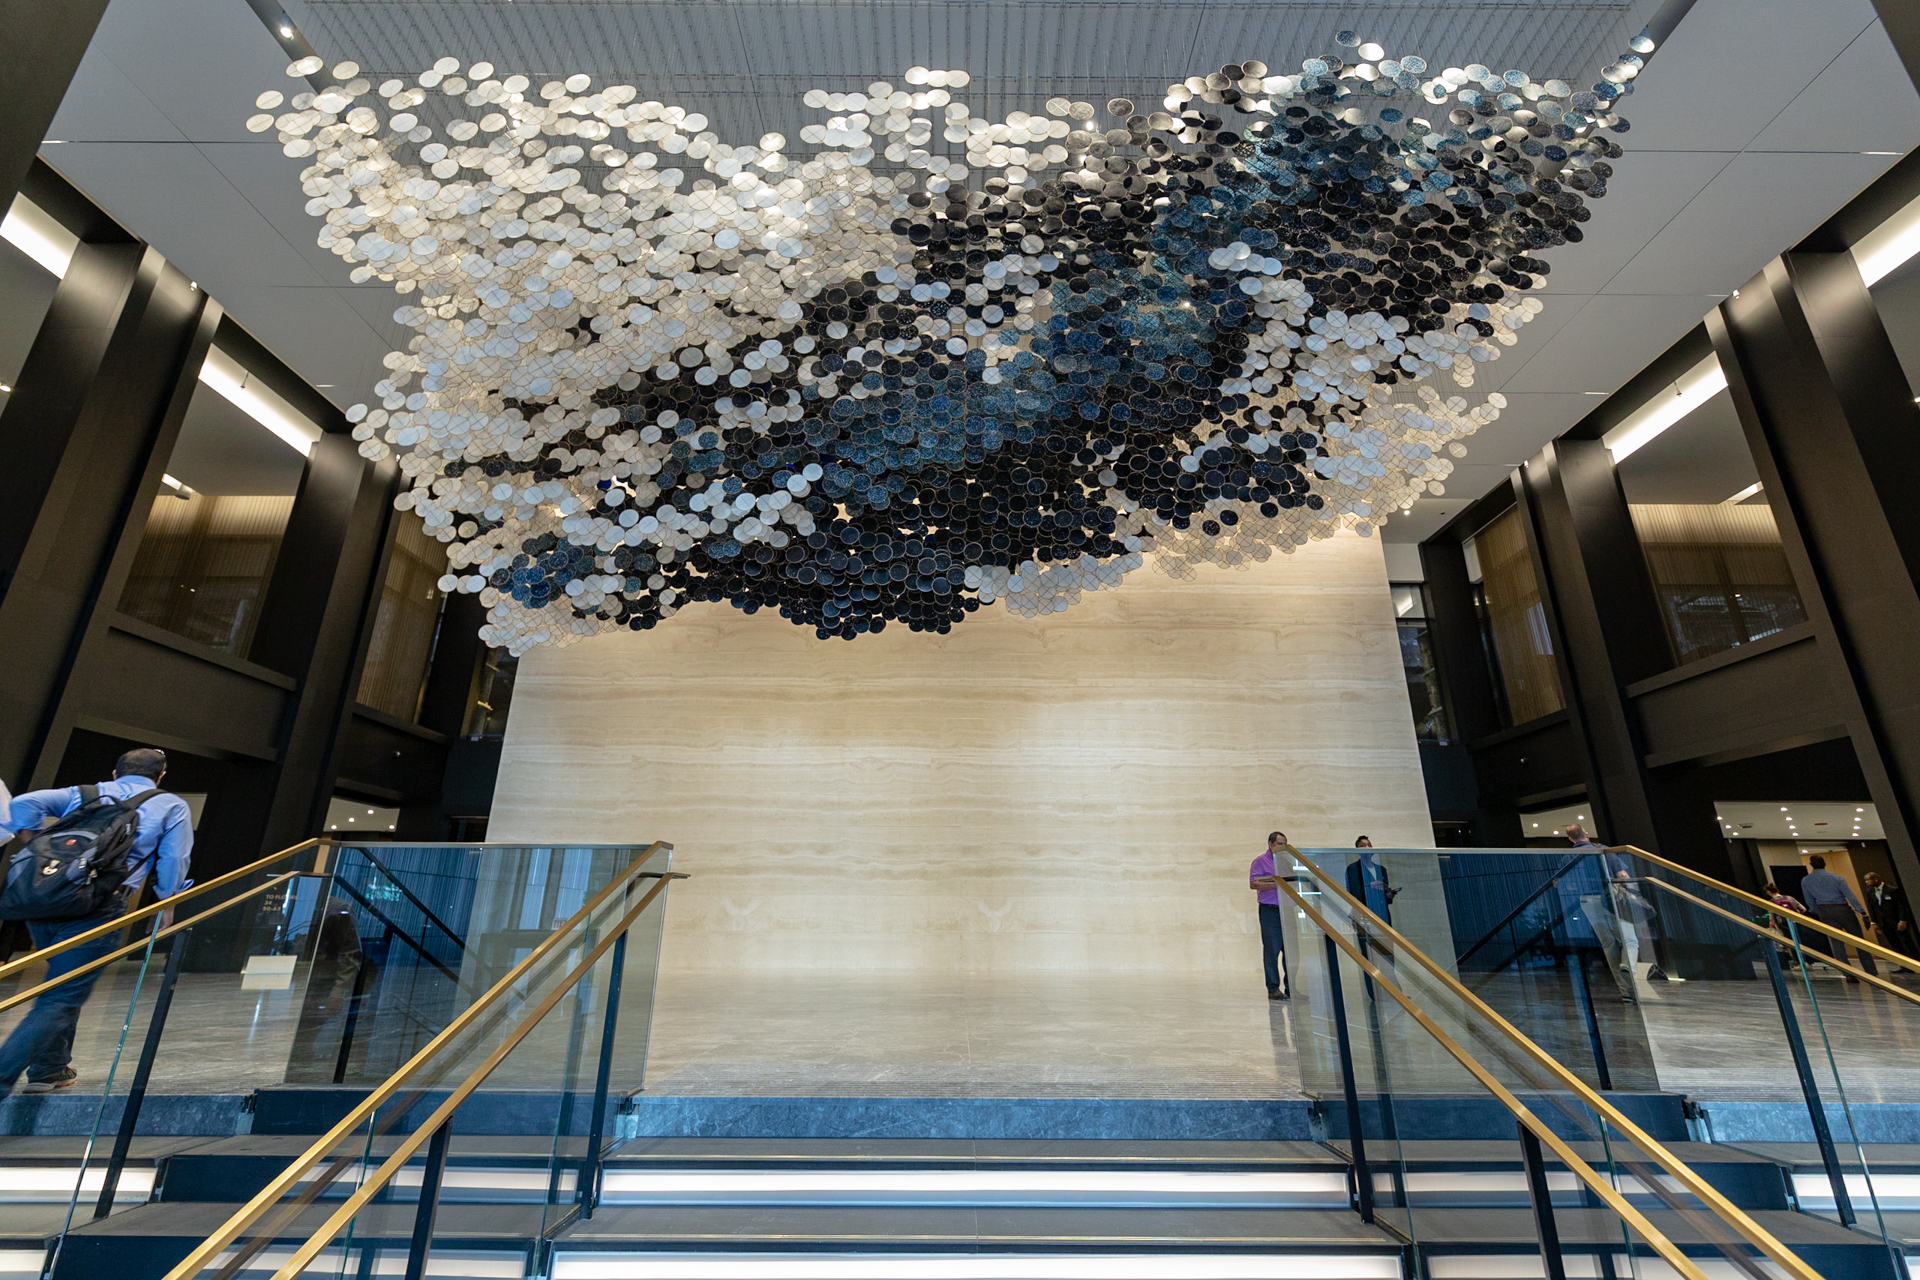 In the Heart of this Infinite Particle of Galactic Dust.  Jacob Hashimoto. Willis Tower's Wacker Drive Lobby, Chicago, IL. Curated by CNL Projects. 2019